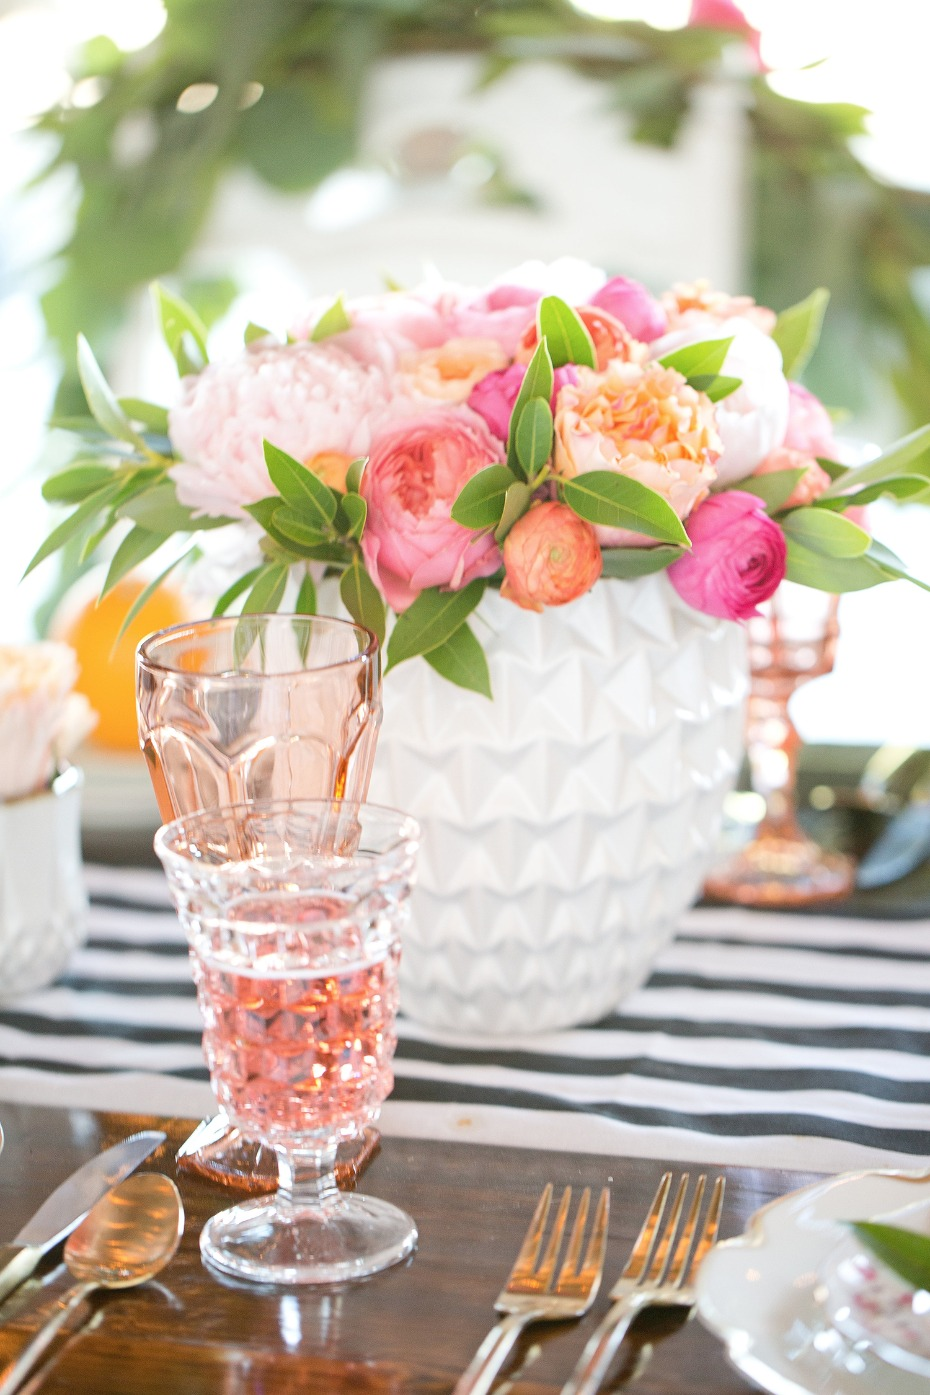 Pretty centerpiece with a black and white table runner